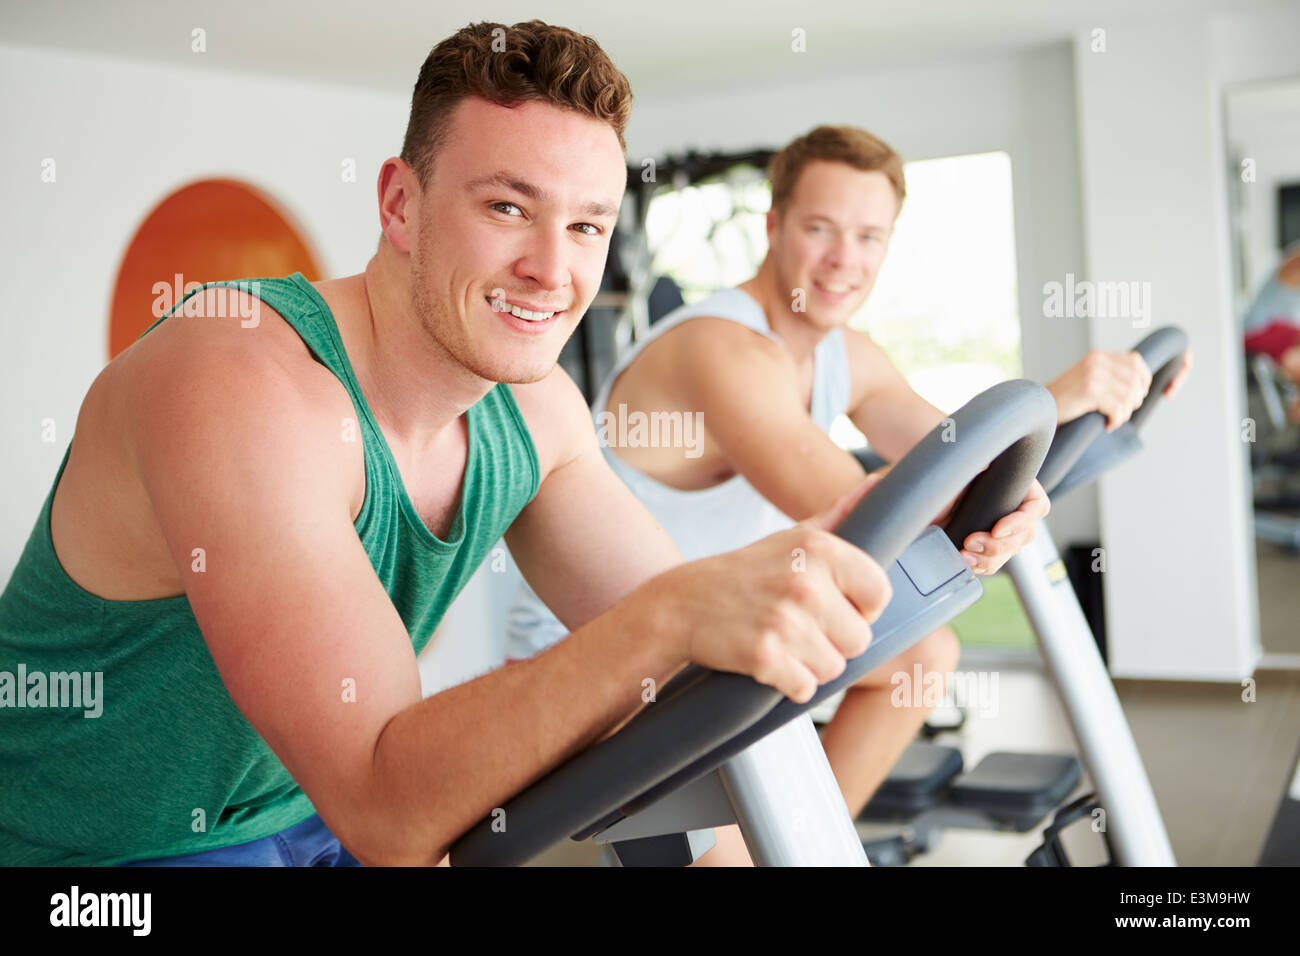 Two Young Men Training In Gym On Cycling Machines Together - Stock Image